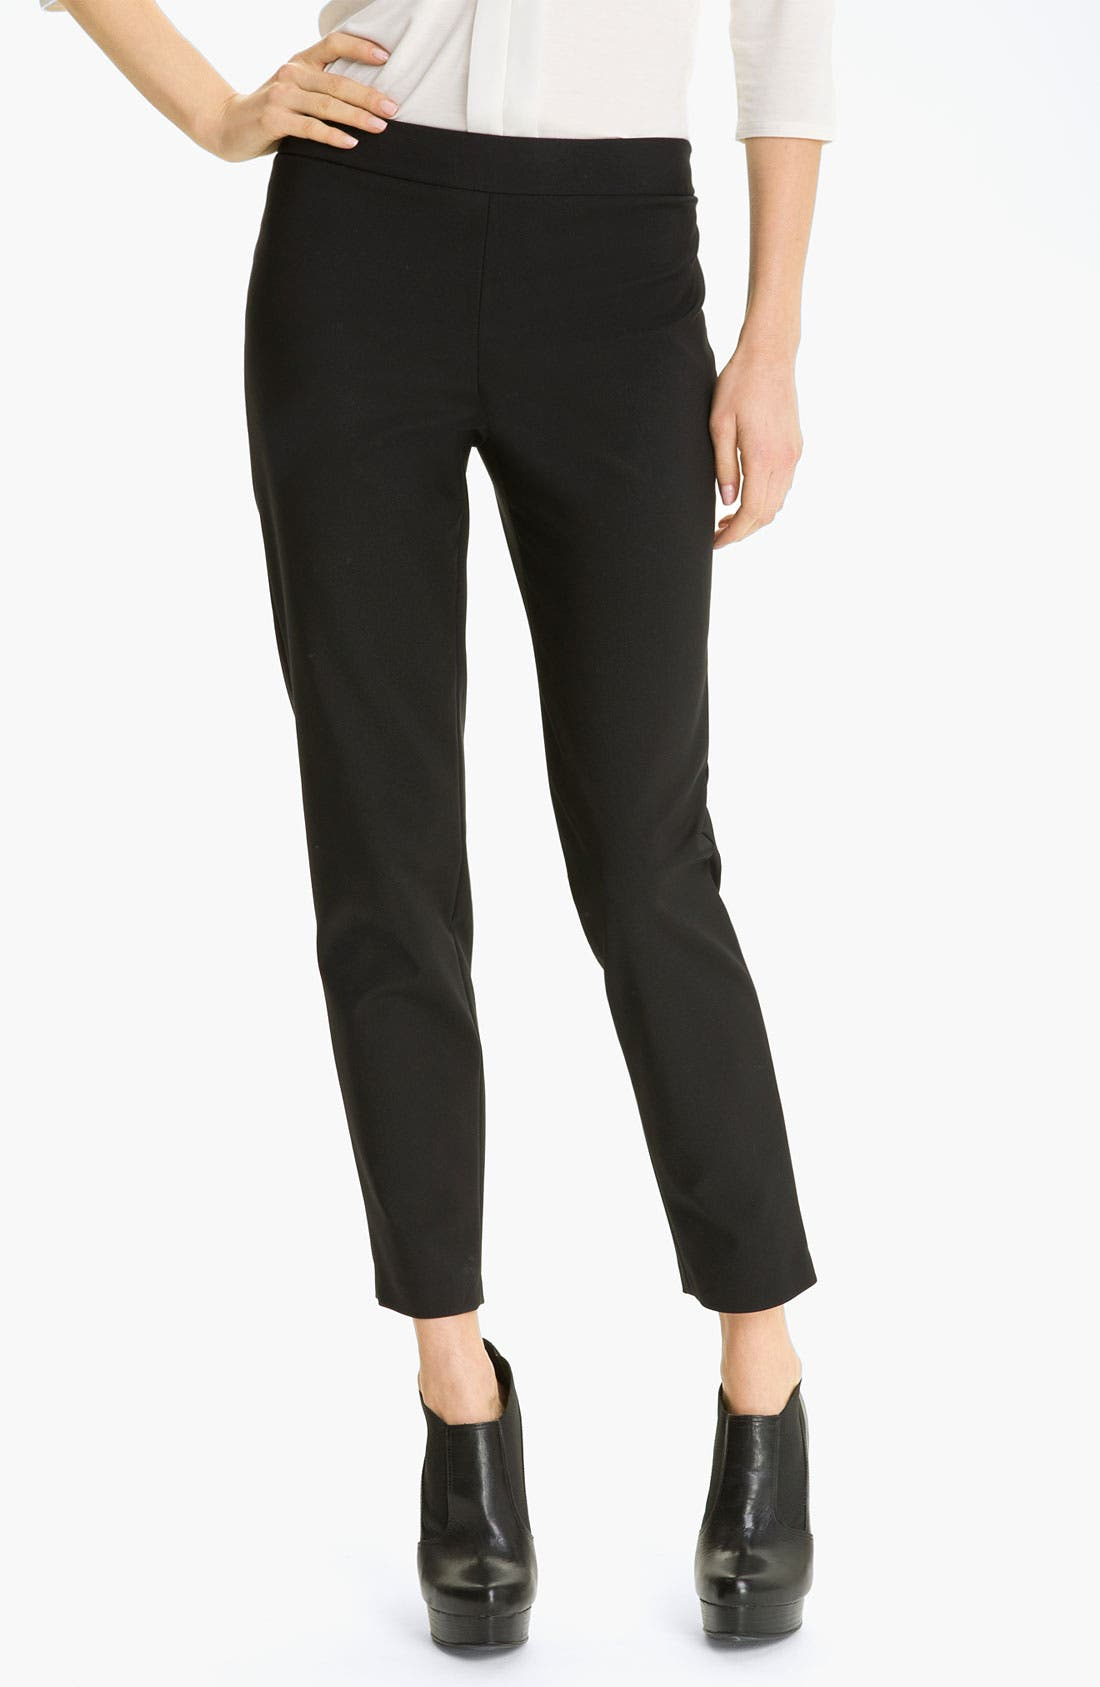 Main Image - Kenneth Cole New York 'Chloe' Cigarette Pants (Petite)